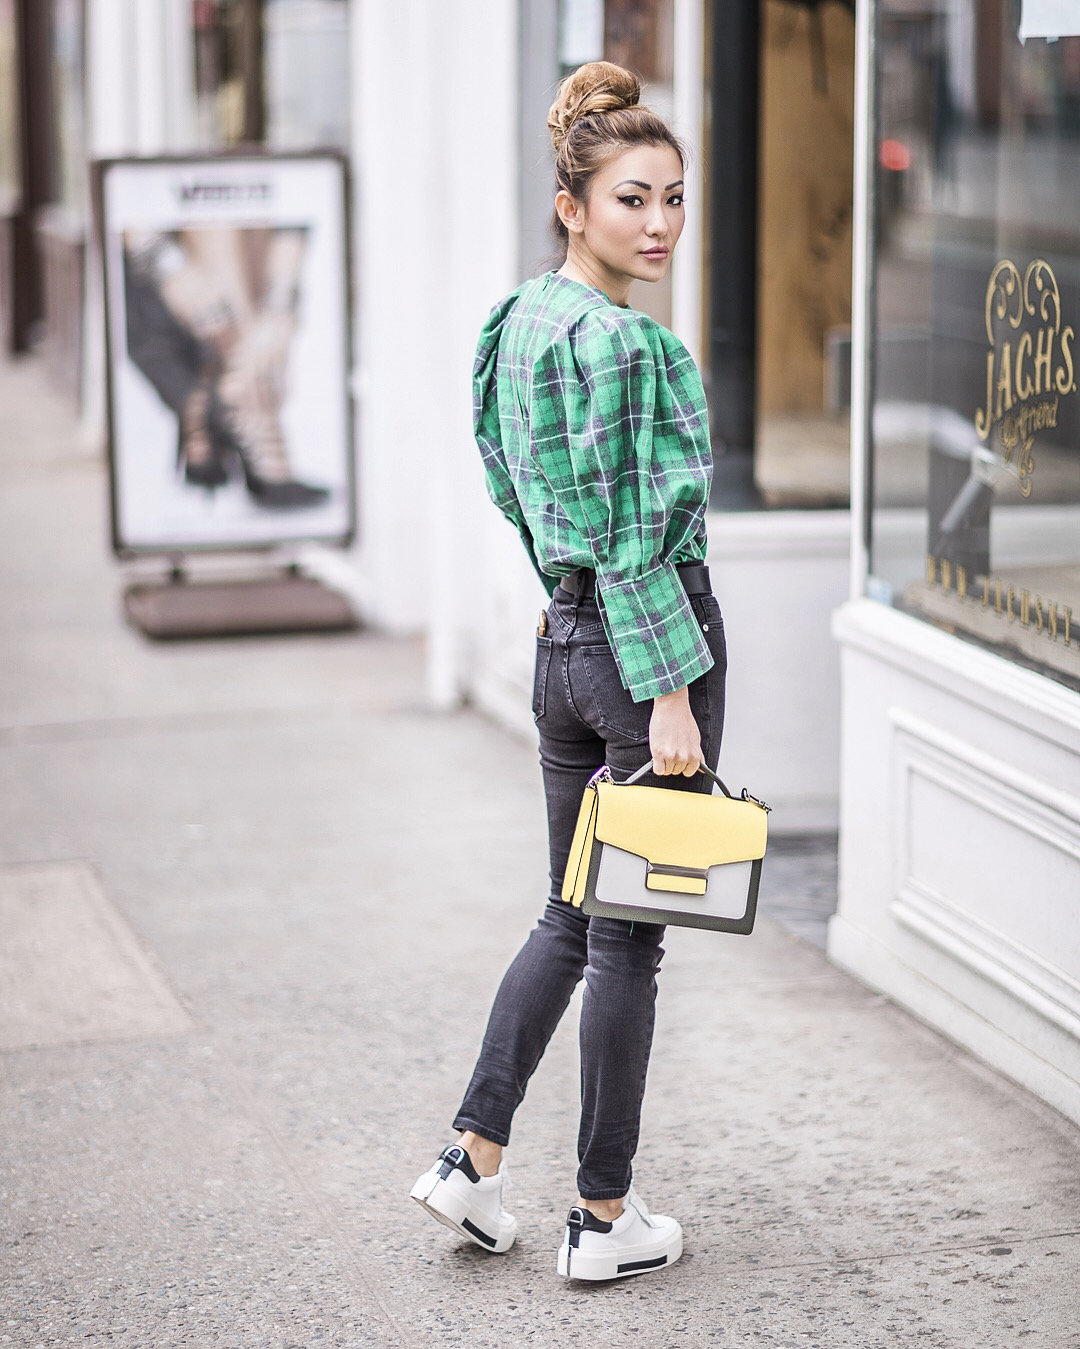 Plaid - 9 Looks that Seamlessly Transition from Winter to Spring // NotJessFashion.com